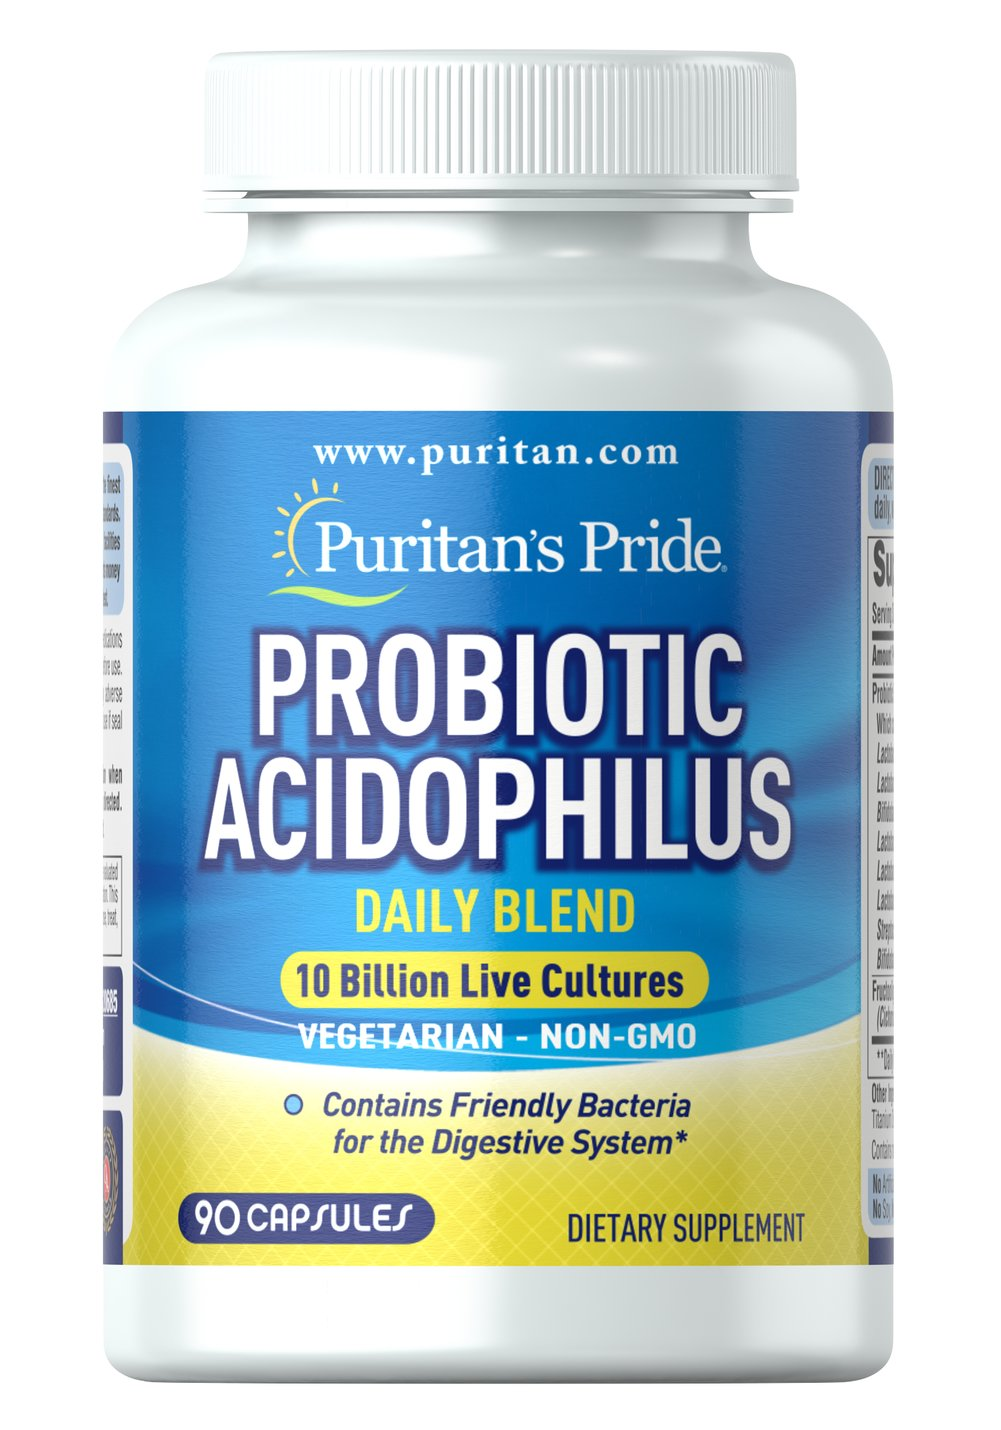 Probiotic Acidophilus Daily Blend